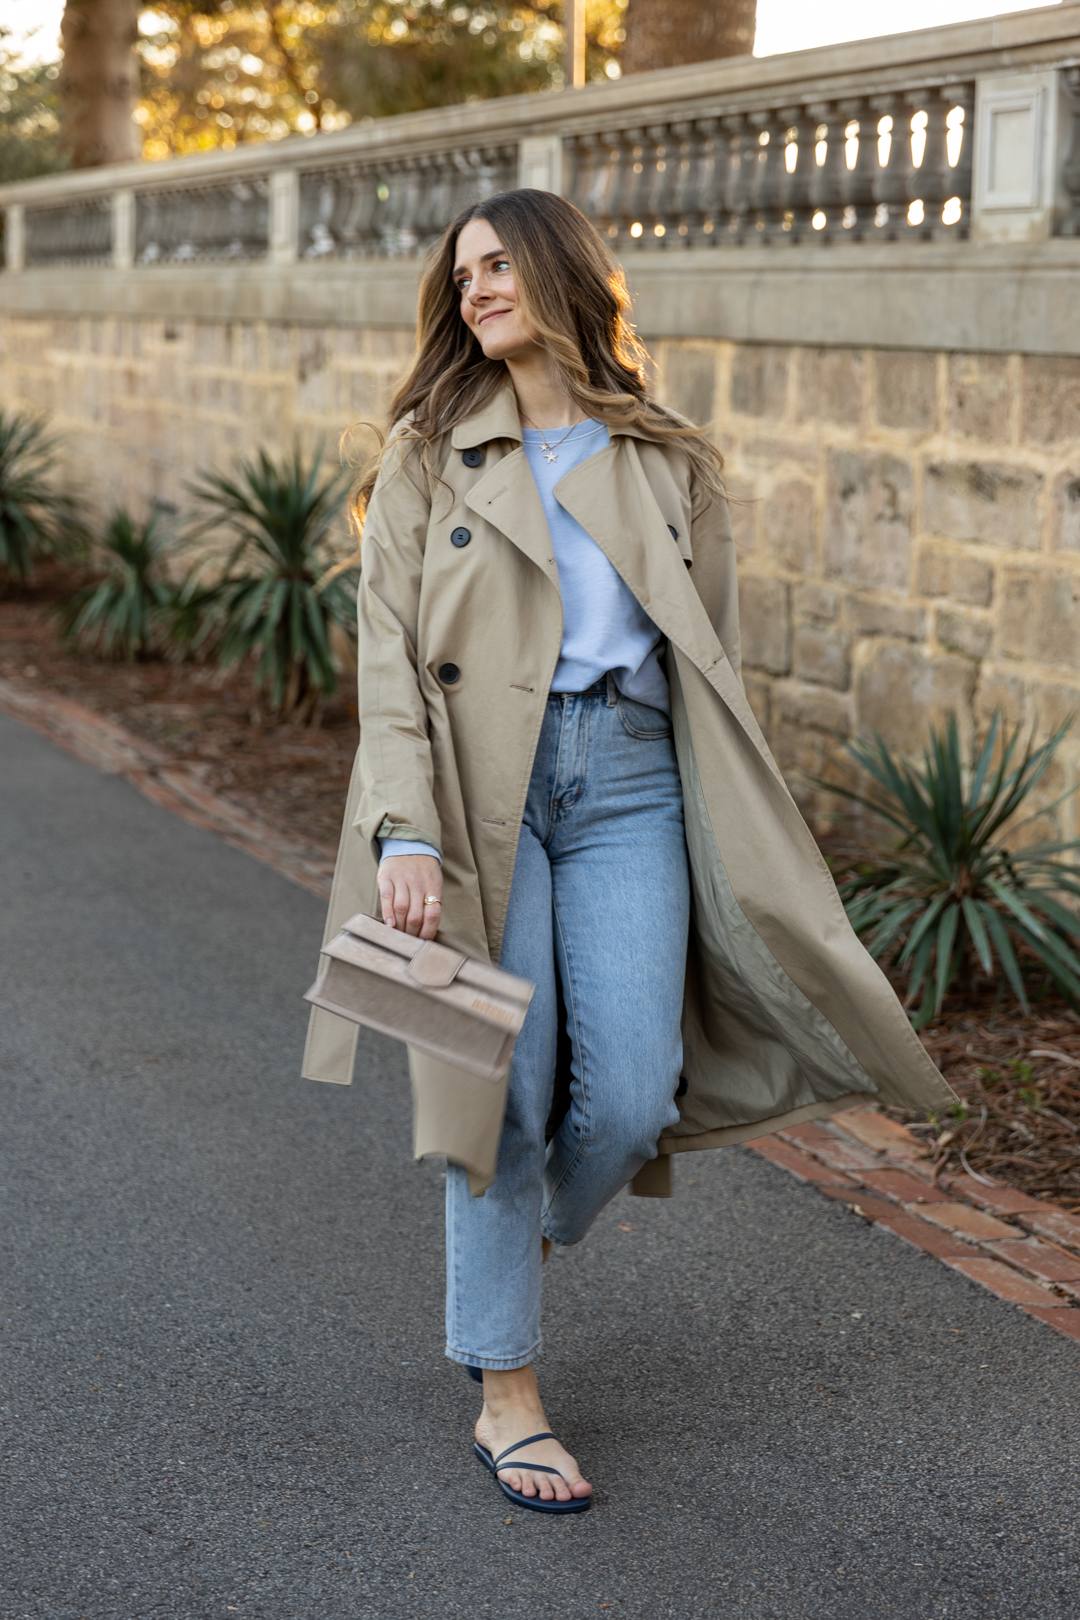 classic trench coat, a must have winter coat